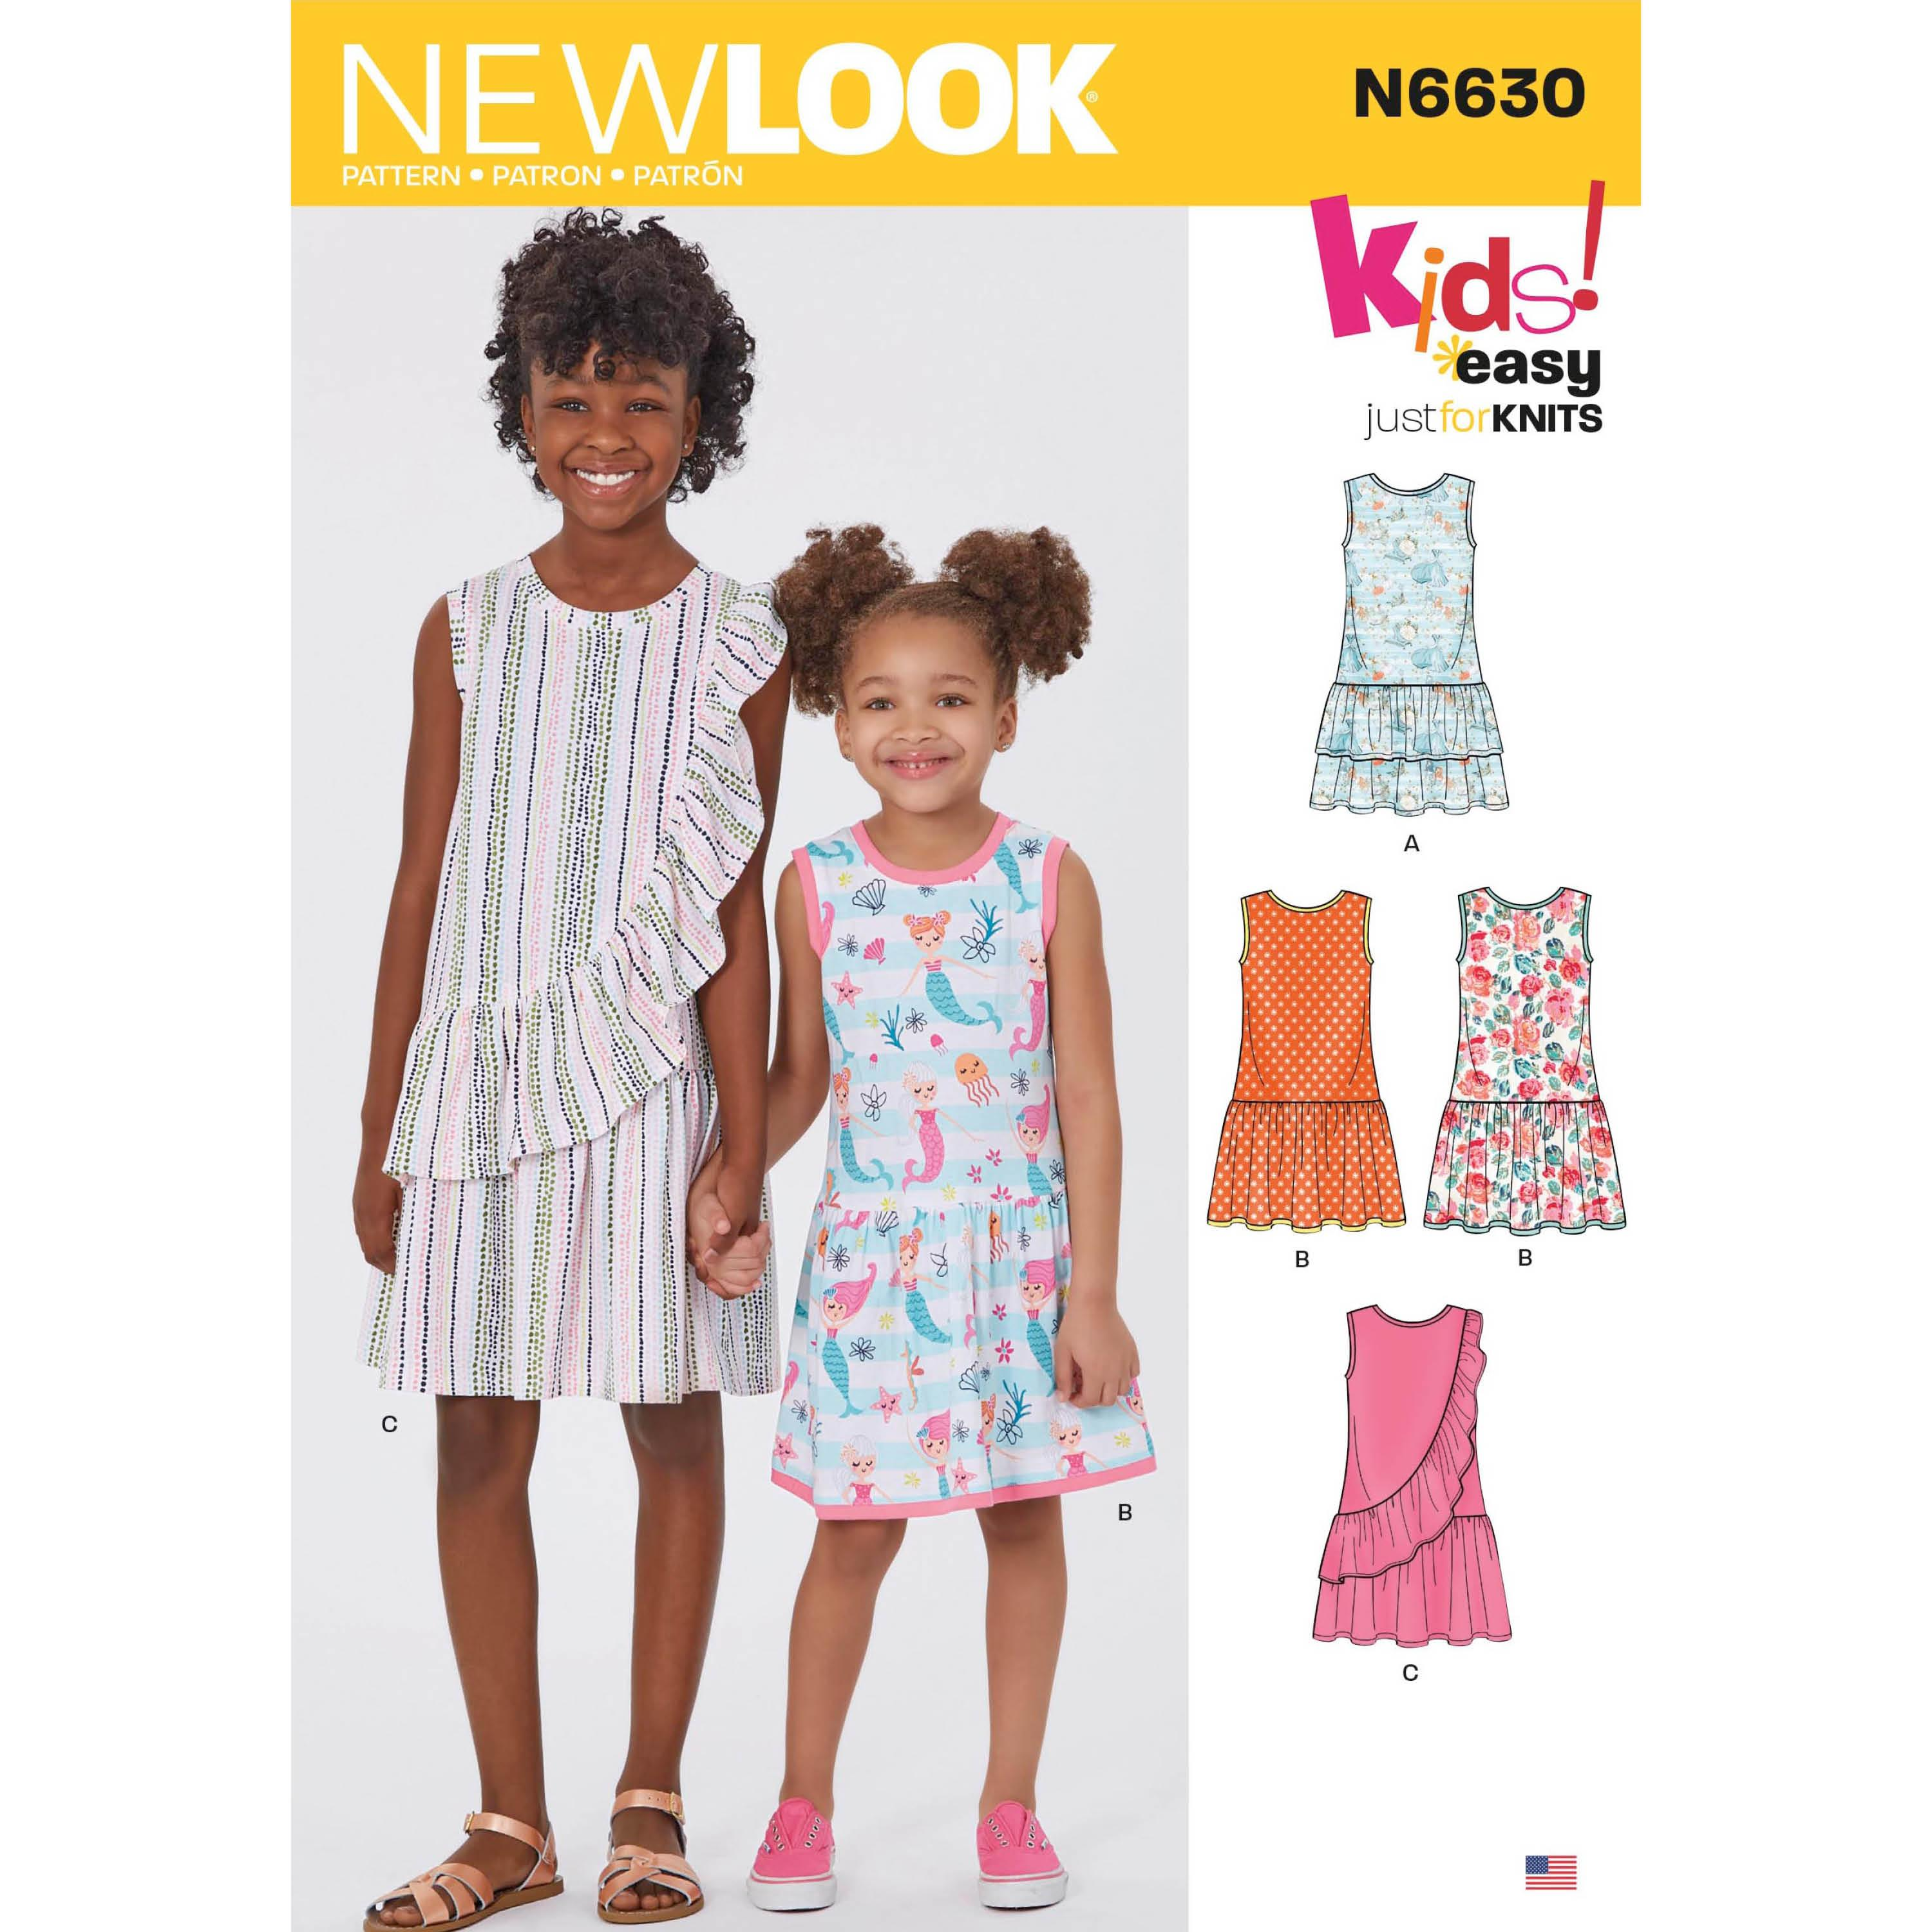 NewLook Sewing Pattern N6630 Children's And Girls' Dresses